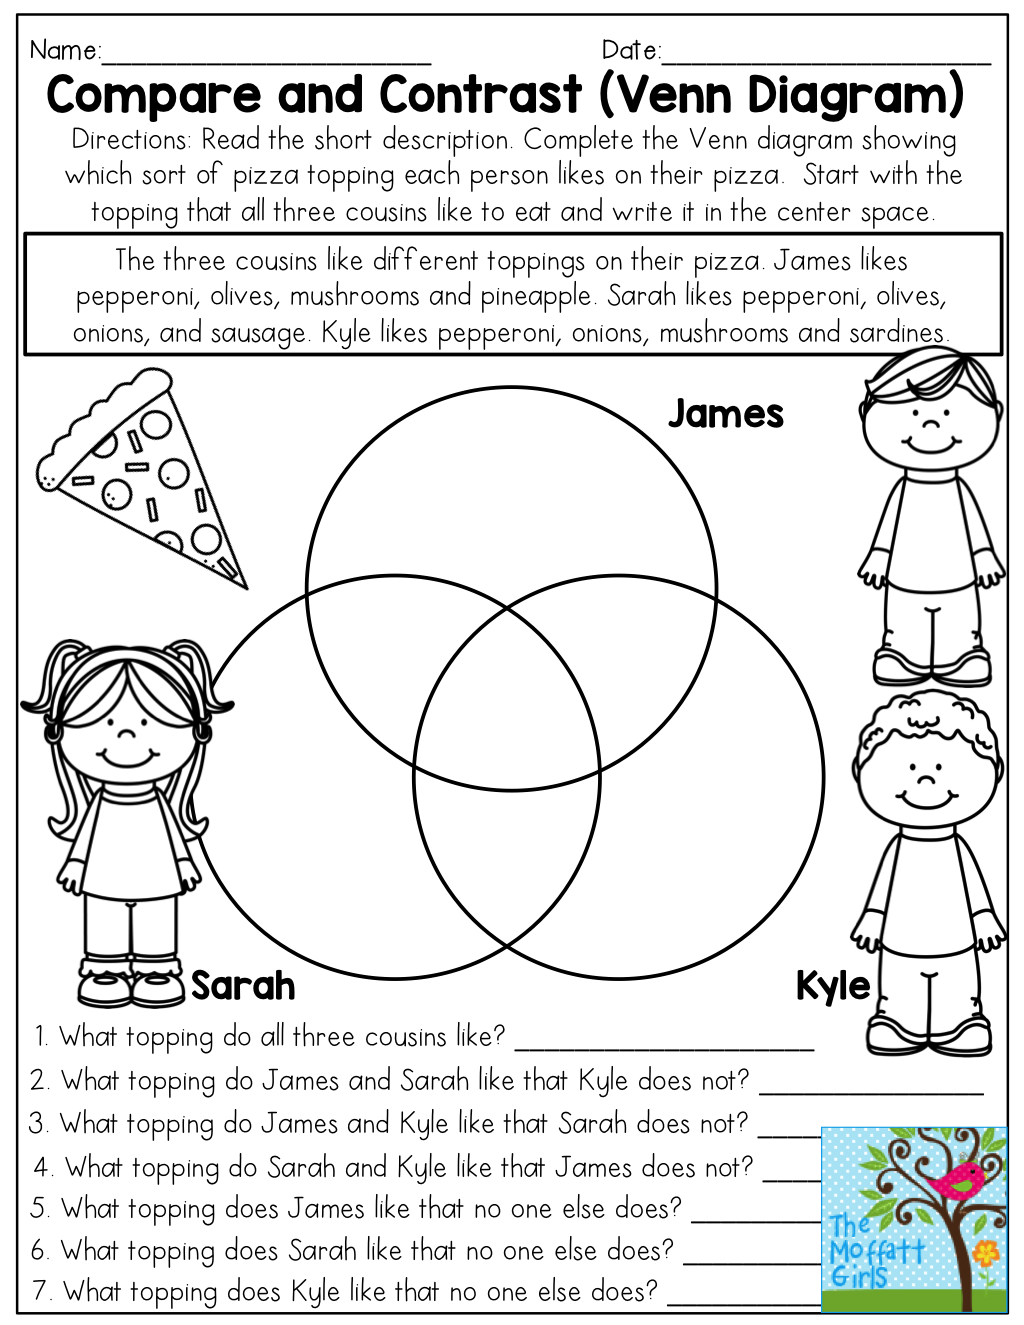 small resolution of compare and contrast venn diagram 3 things read the short description complete the venn diagram and answer the questions teaching core concepts for 3rd